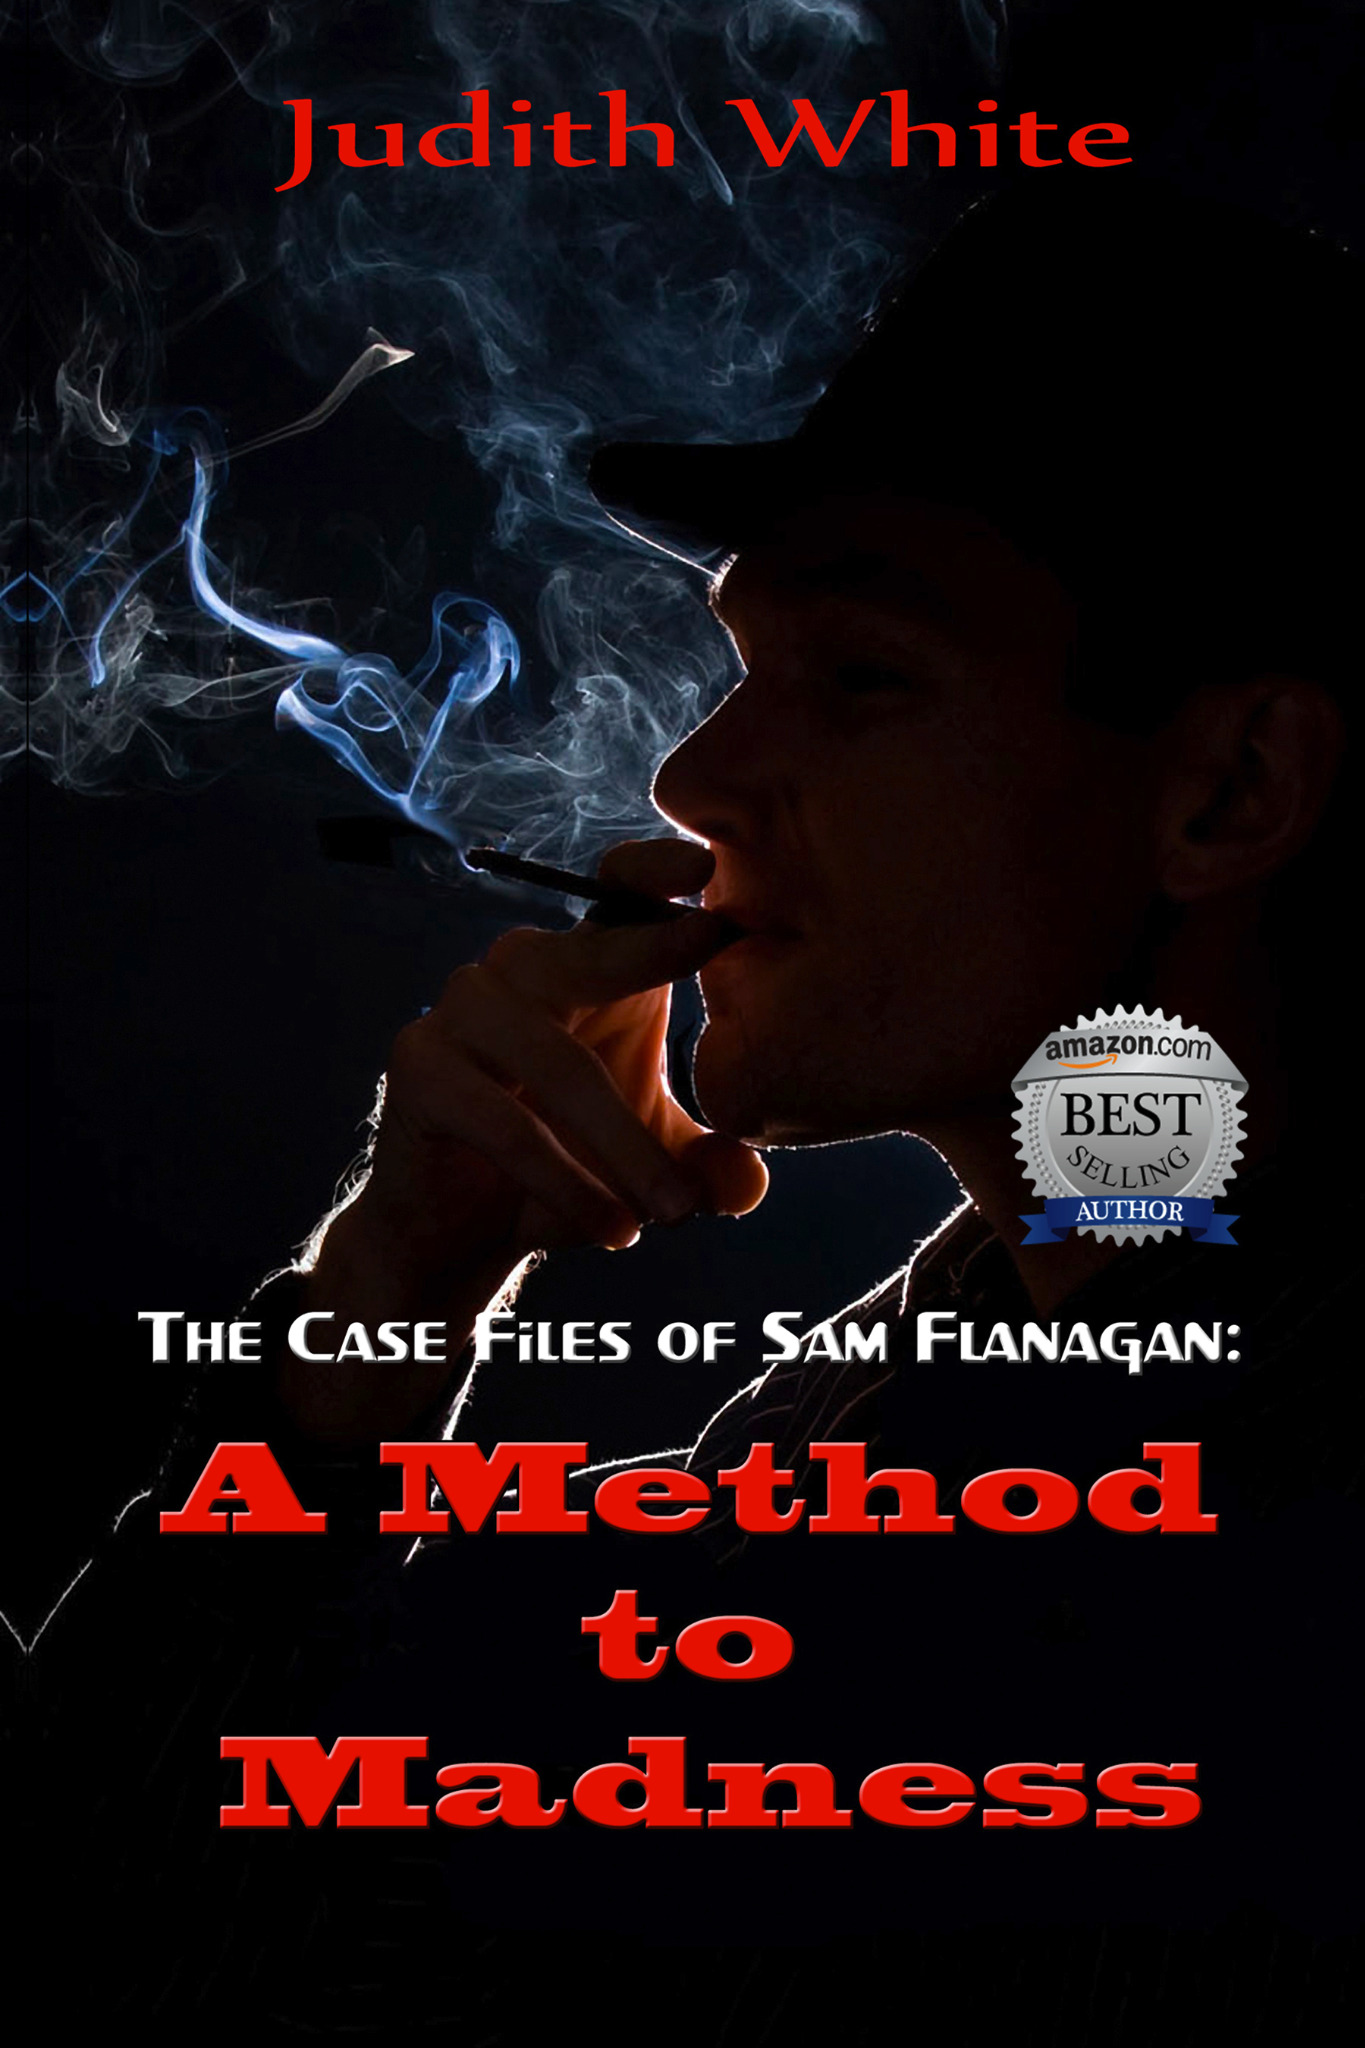 The Case Files of Sam Flanagan: A Method to Madness